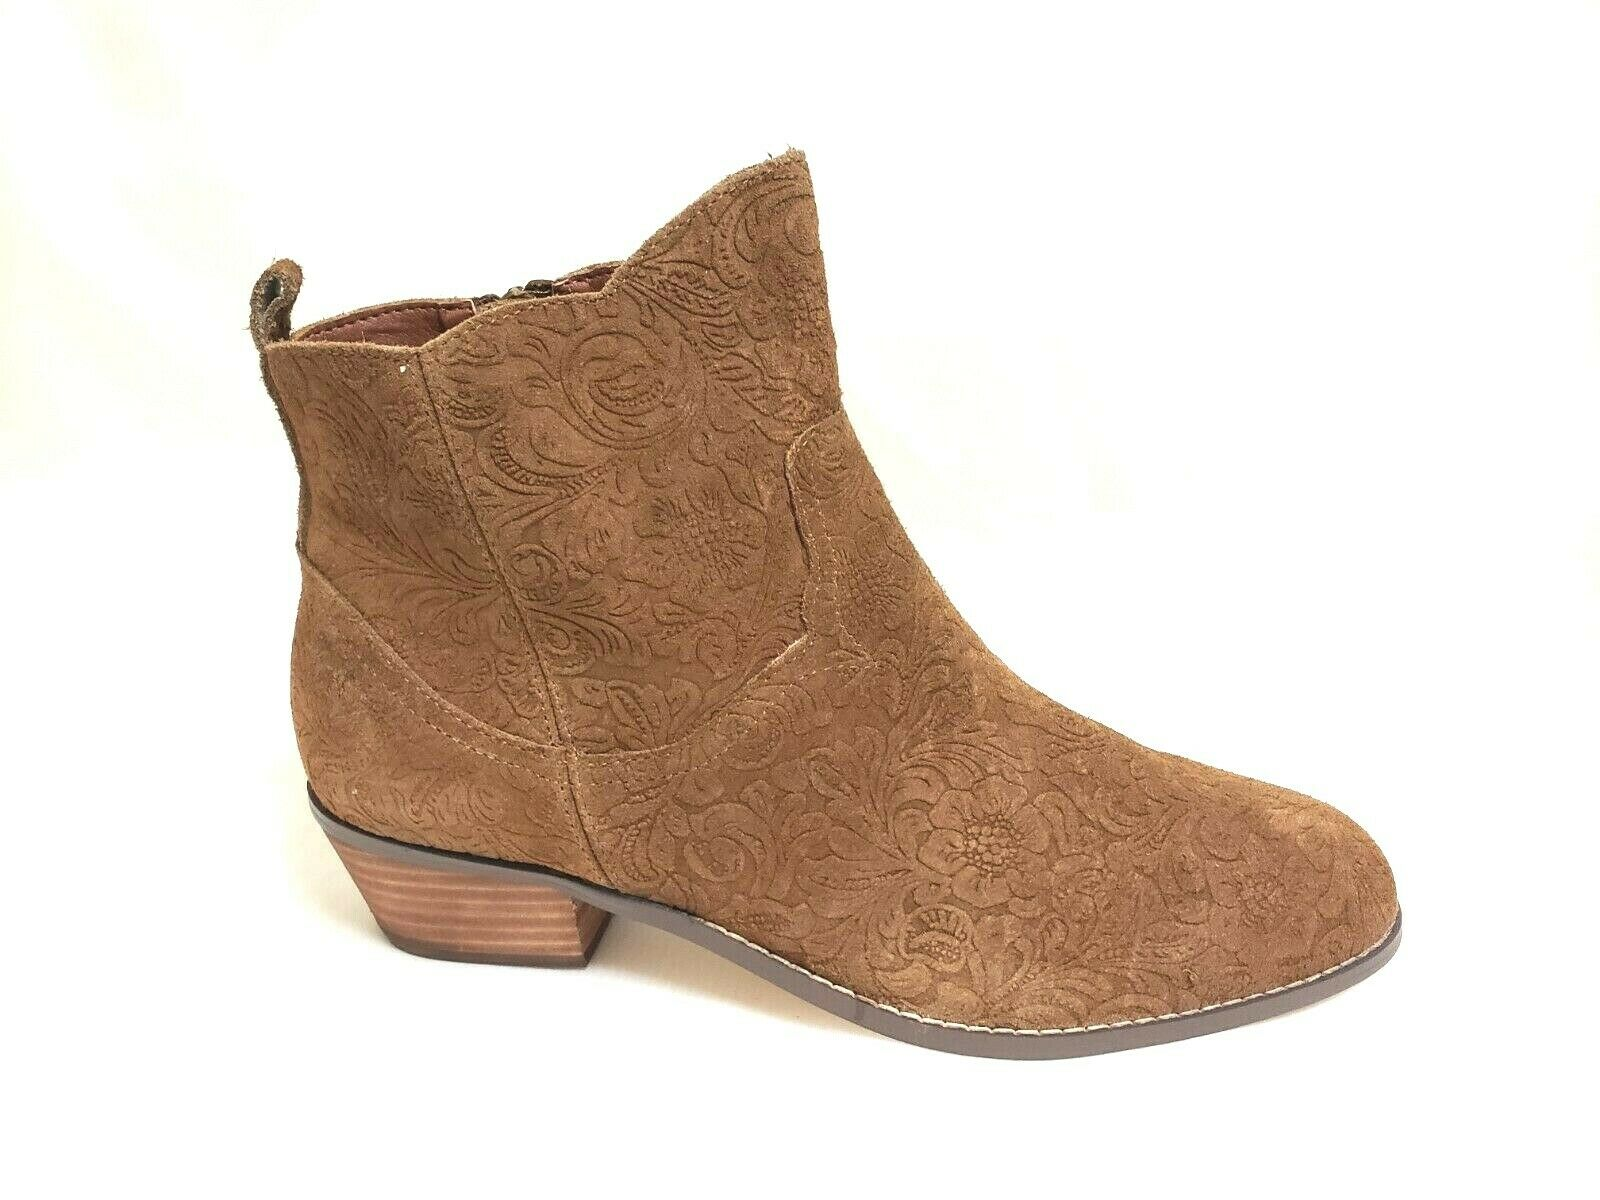 NEW  Women's YELLOW BOX EMBOSS Boot 40470 - Chestnut W141 sm